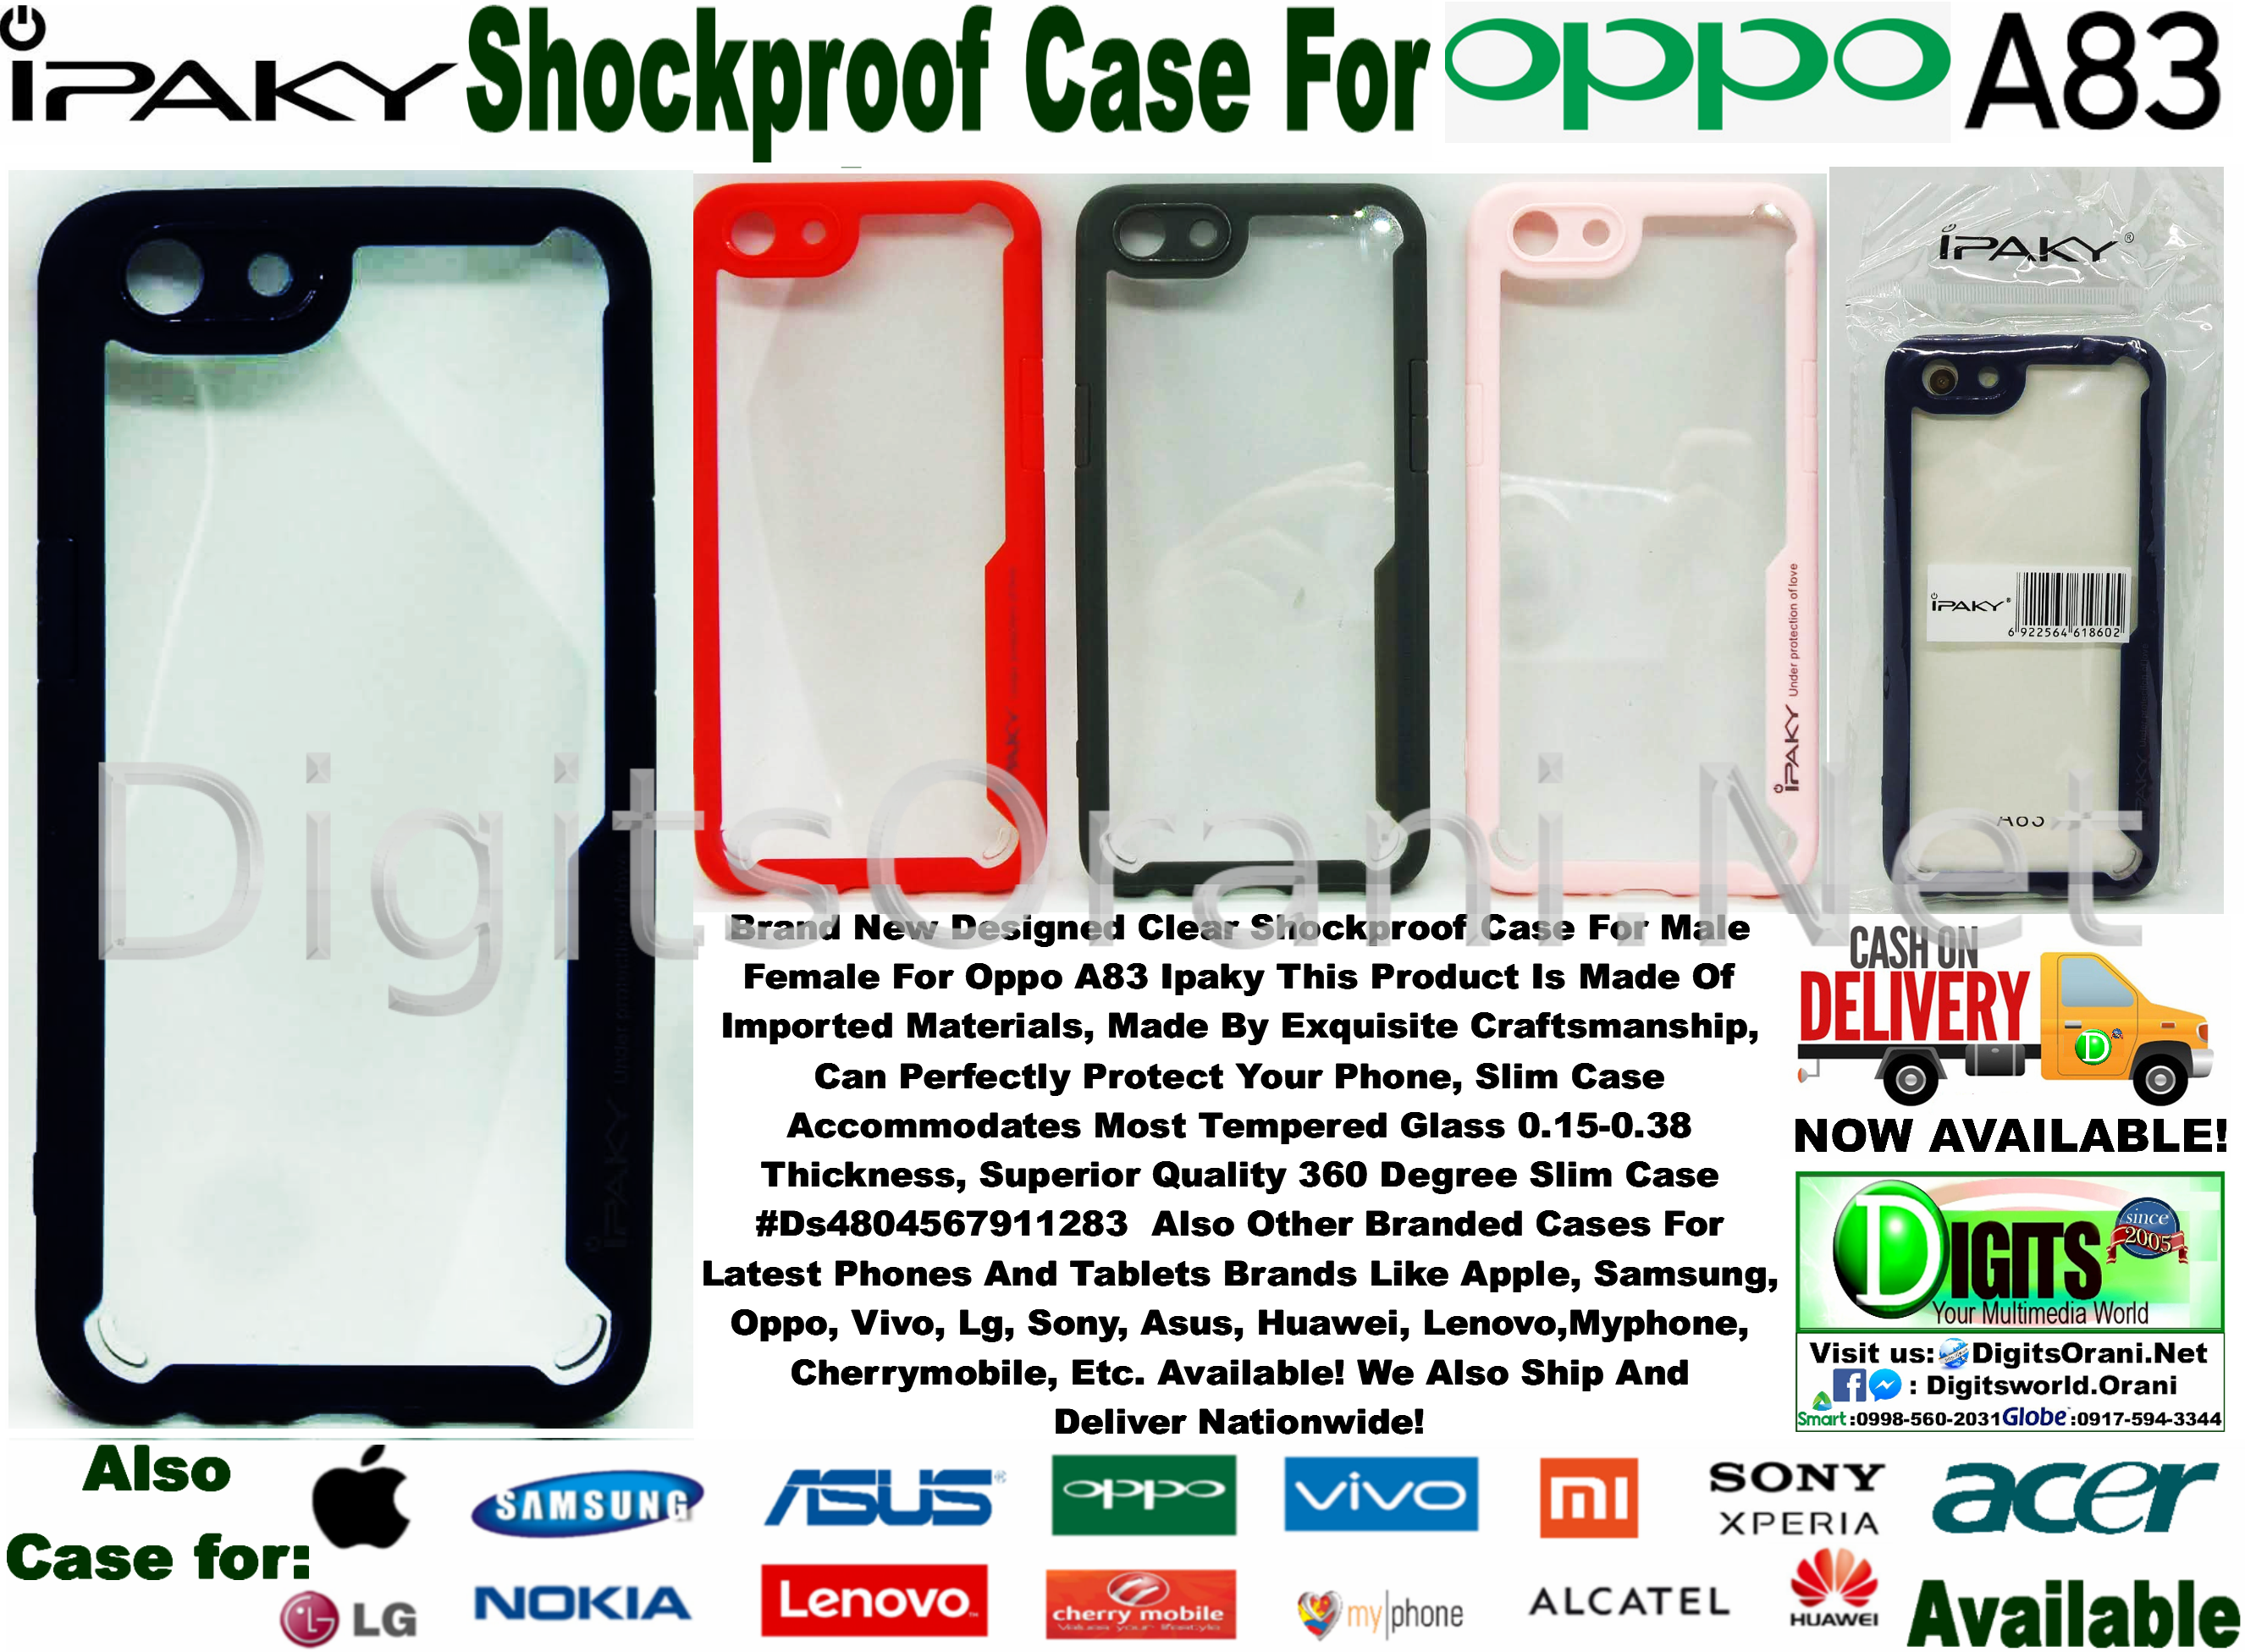 Designed Clear Shockproof Case For Male / Boy & Female For Oppo A83 Ipaky  This Product Is Made Of Imported Materials, Made By Exquisite  Craftsmanship,